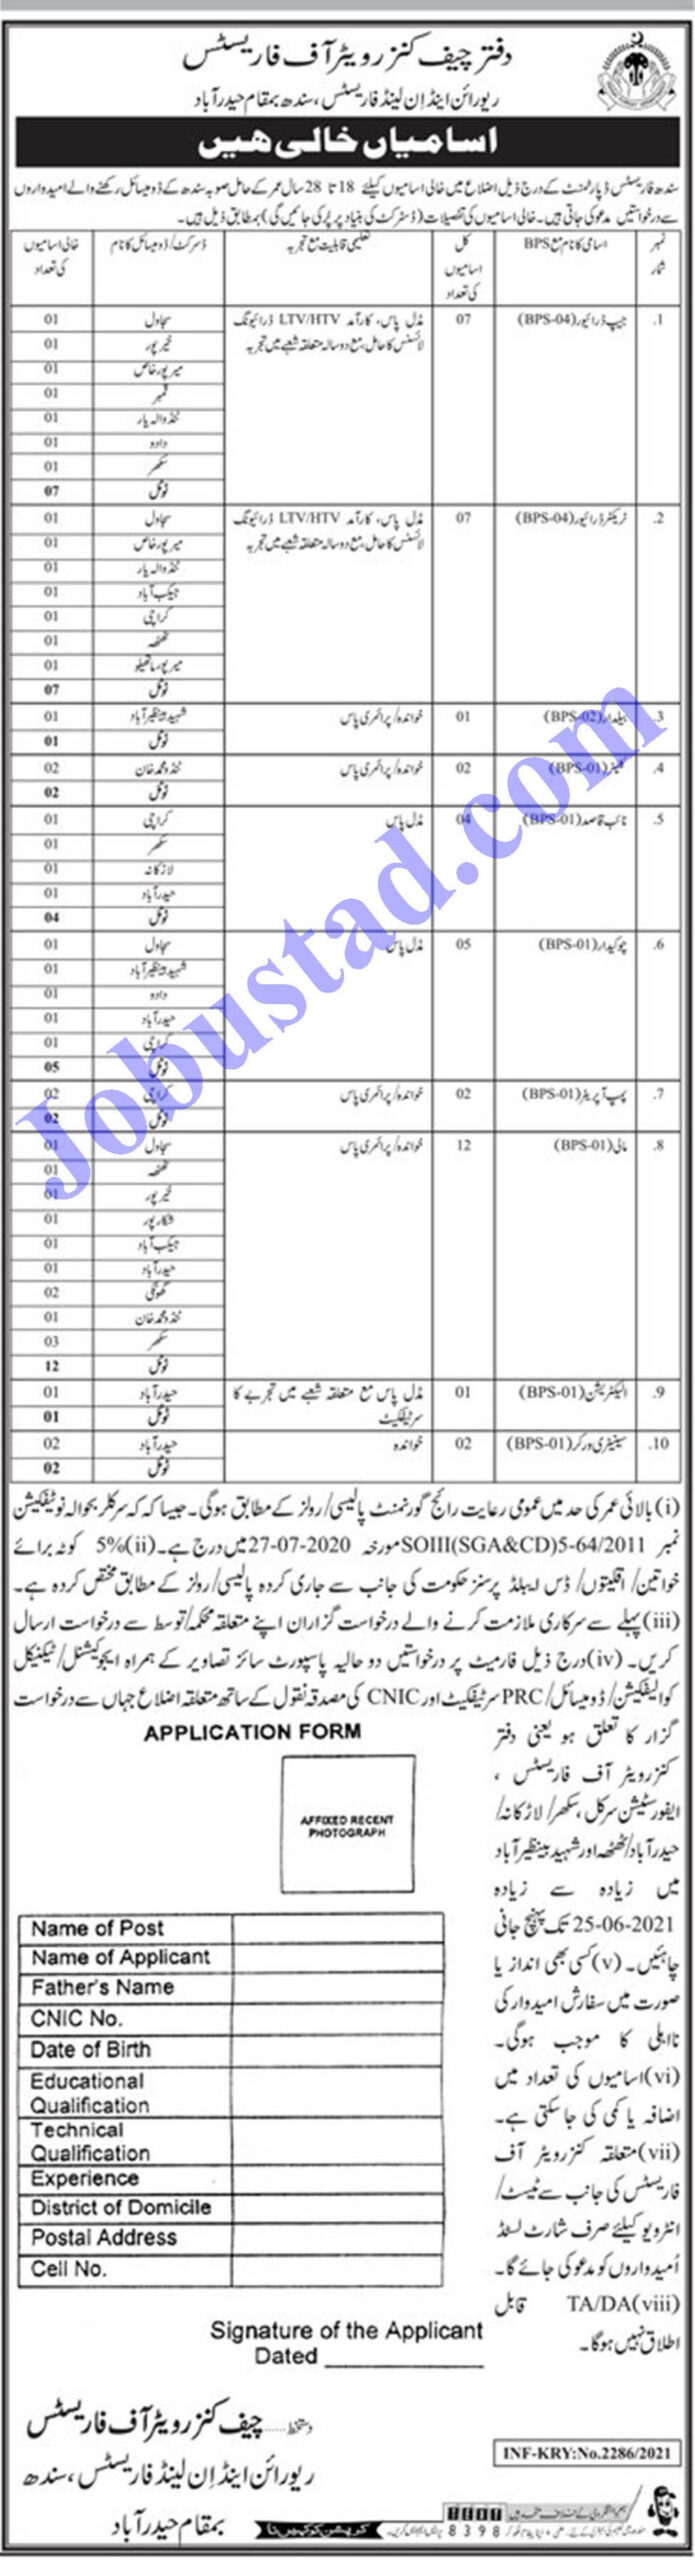 Forest and Wildlife Department Sindh Jobs 2021 Application Form - Forest and Wildlife Department Jobs 2021 Latest Vacancies